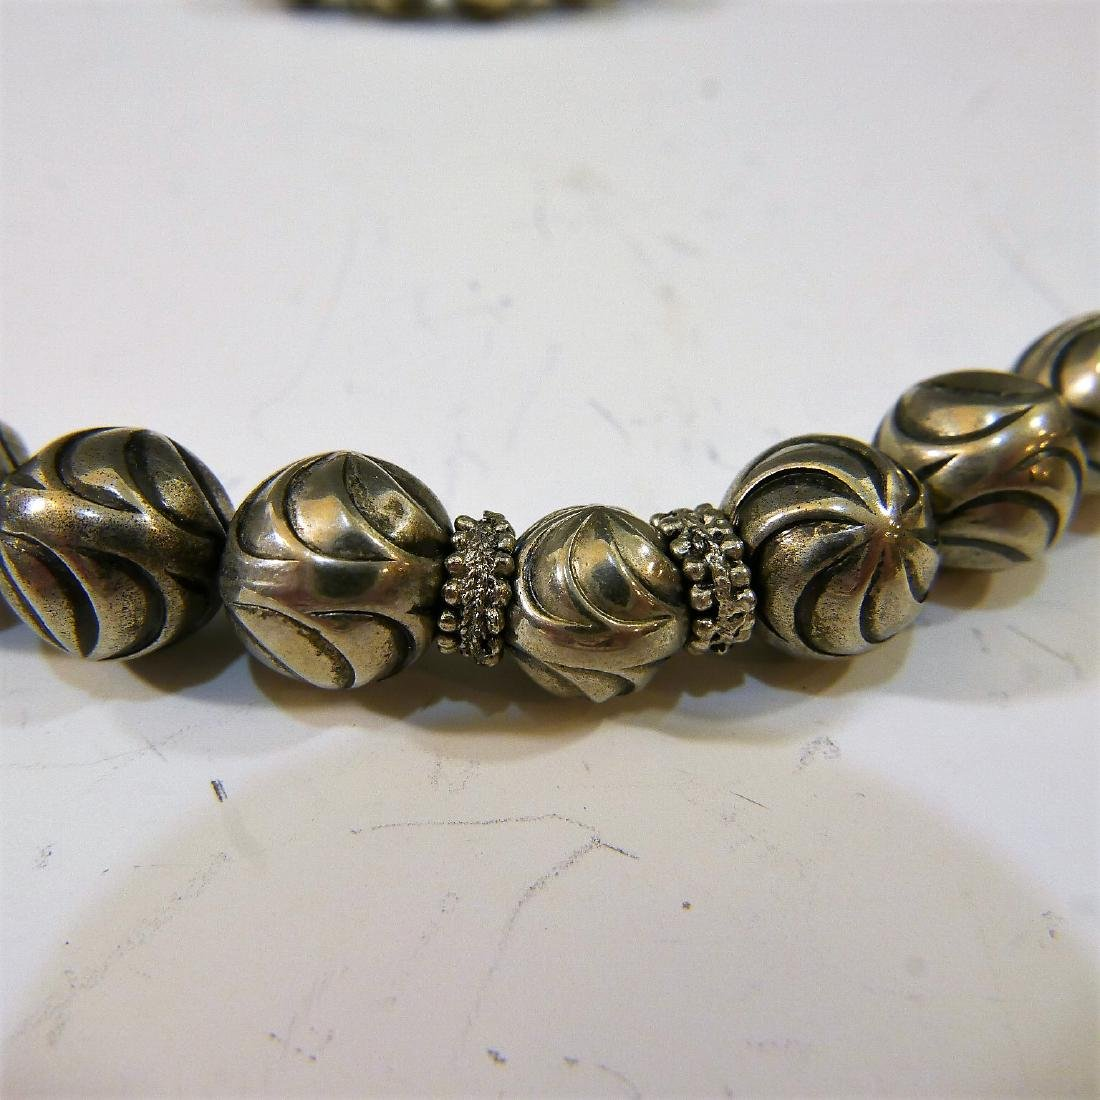 STERLING SILVER BEADS NECKLACE - 3